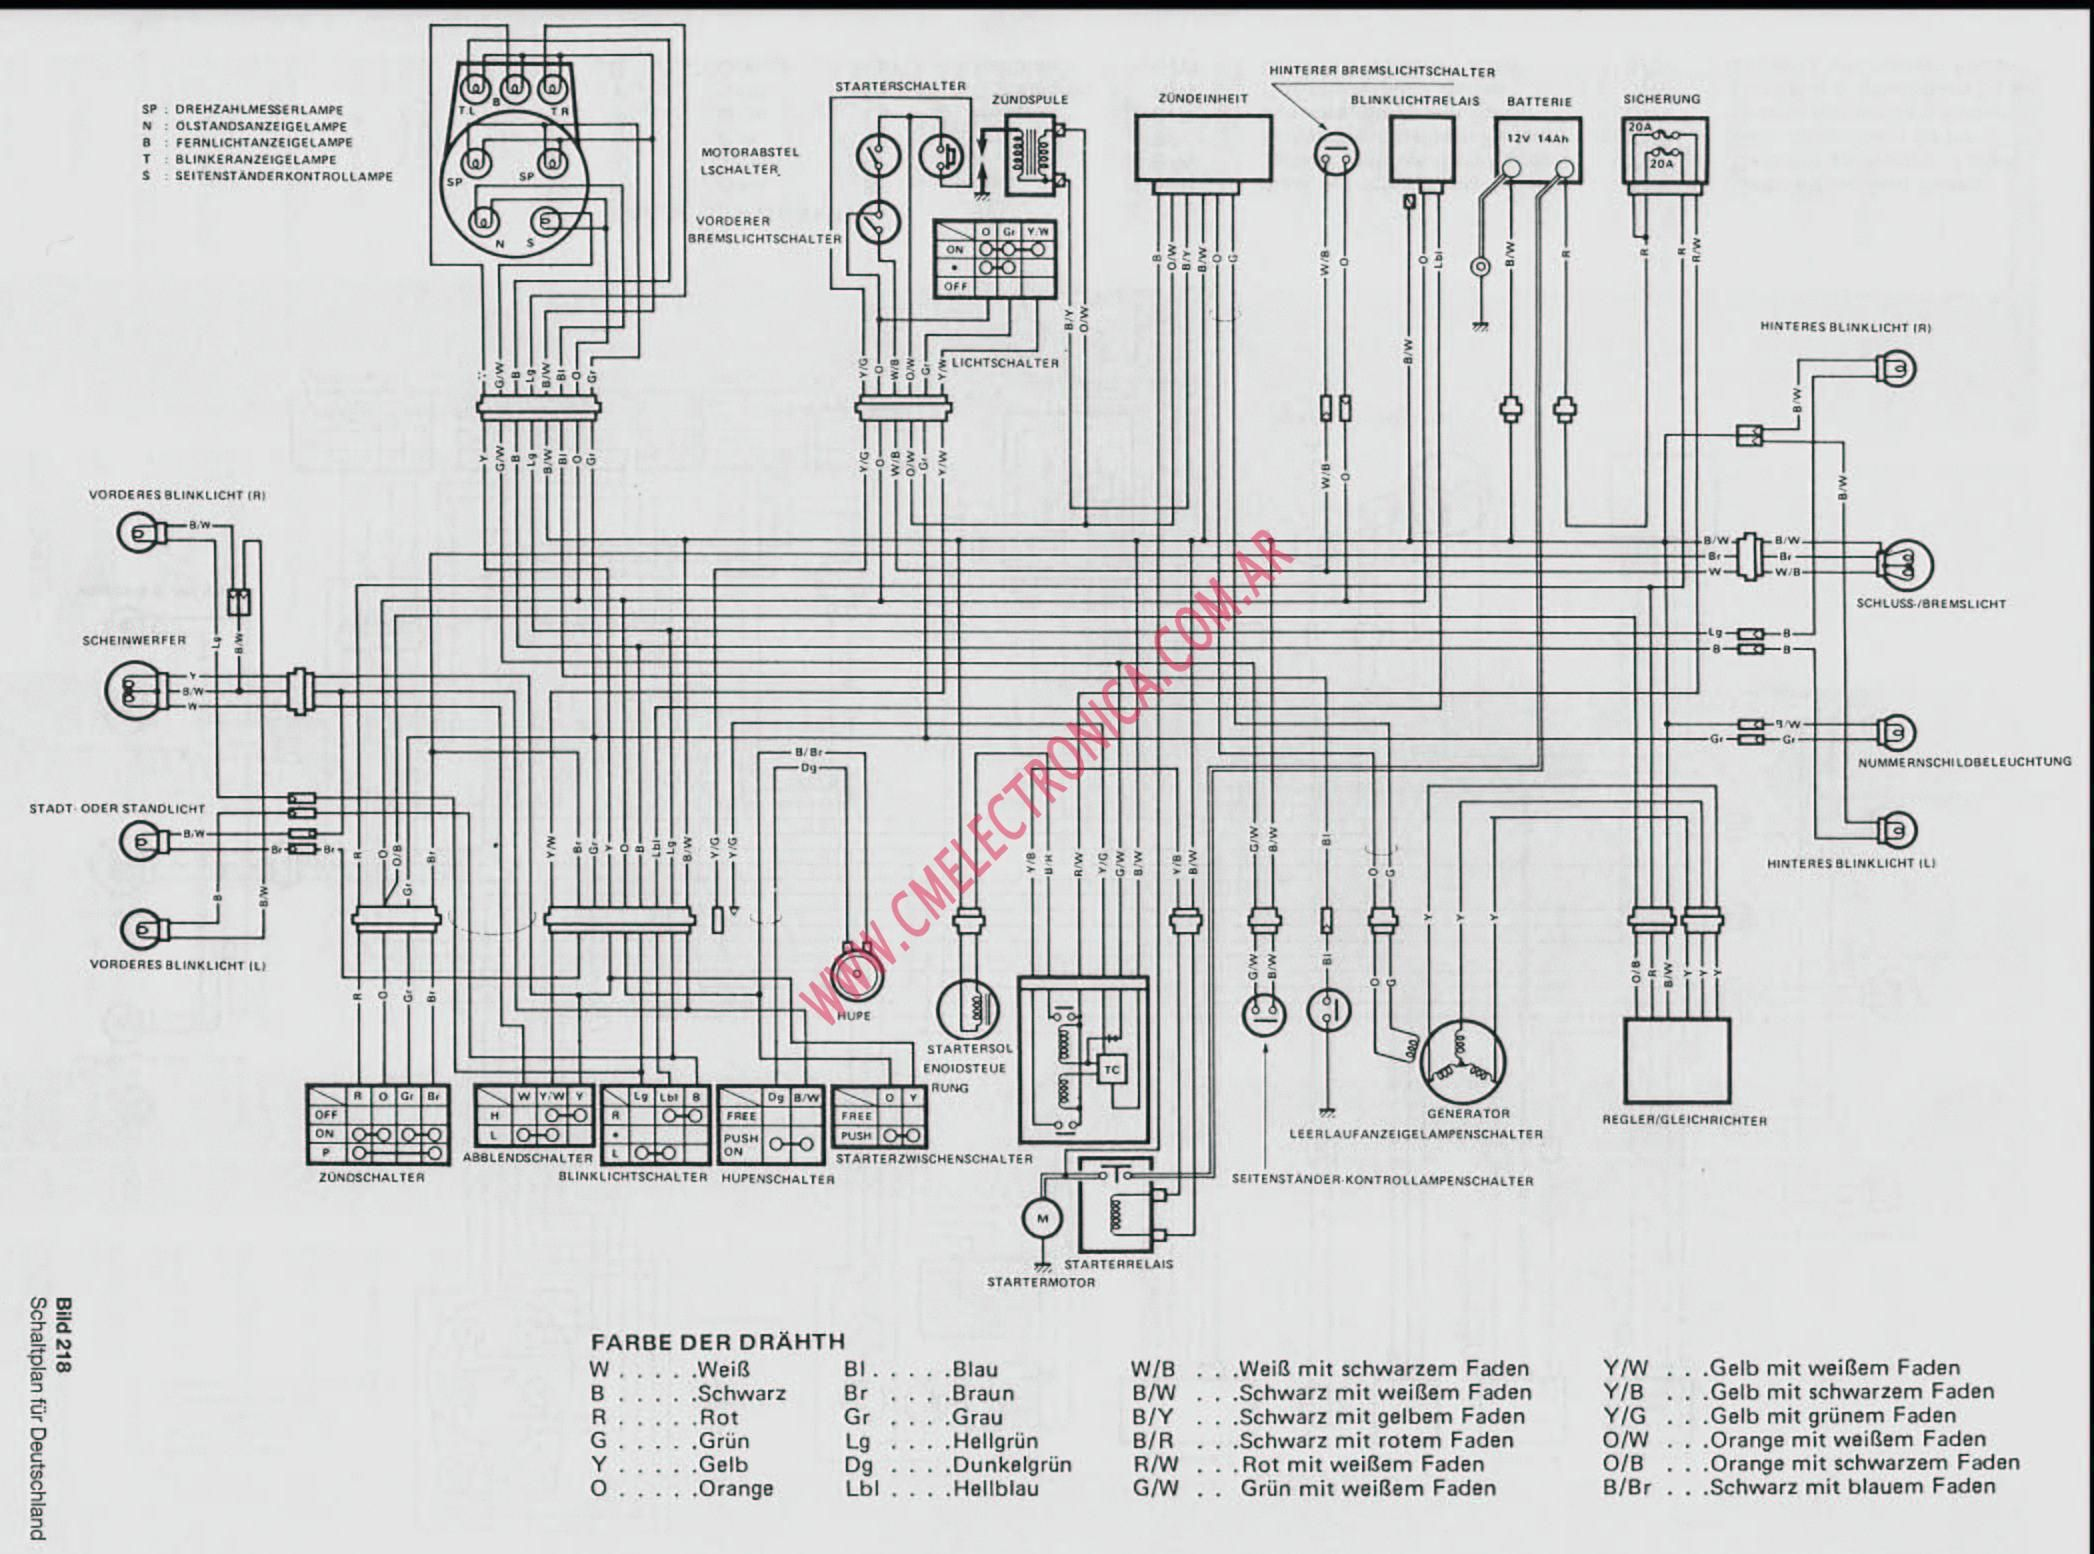 suzuki vl 1500 wiring diagram list of schematic circuit diagram u2022 rh  orionproject co 2003 suzuki volusia wiring diagram 2003 suzuki hayabusa  wiring ...